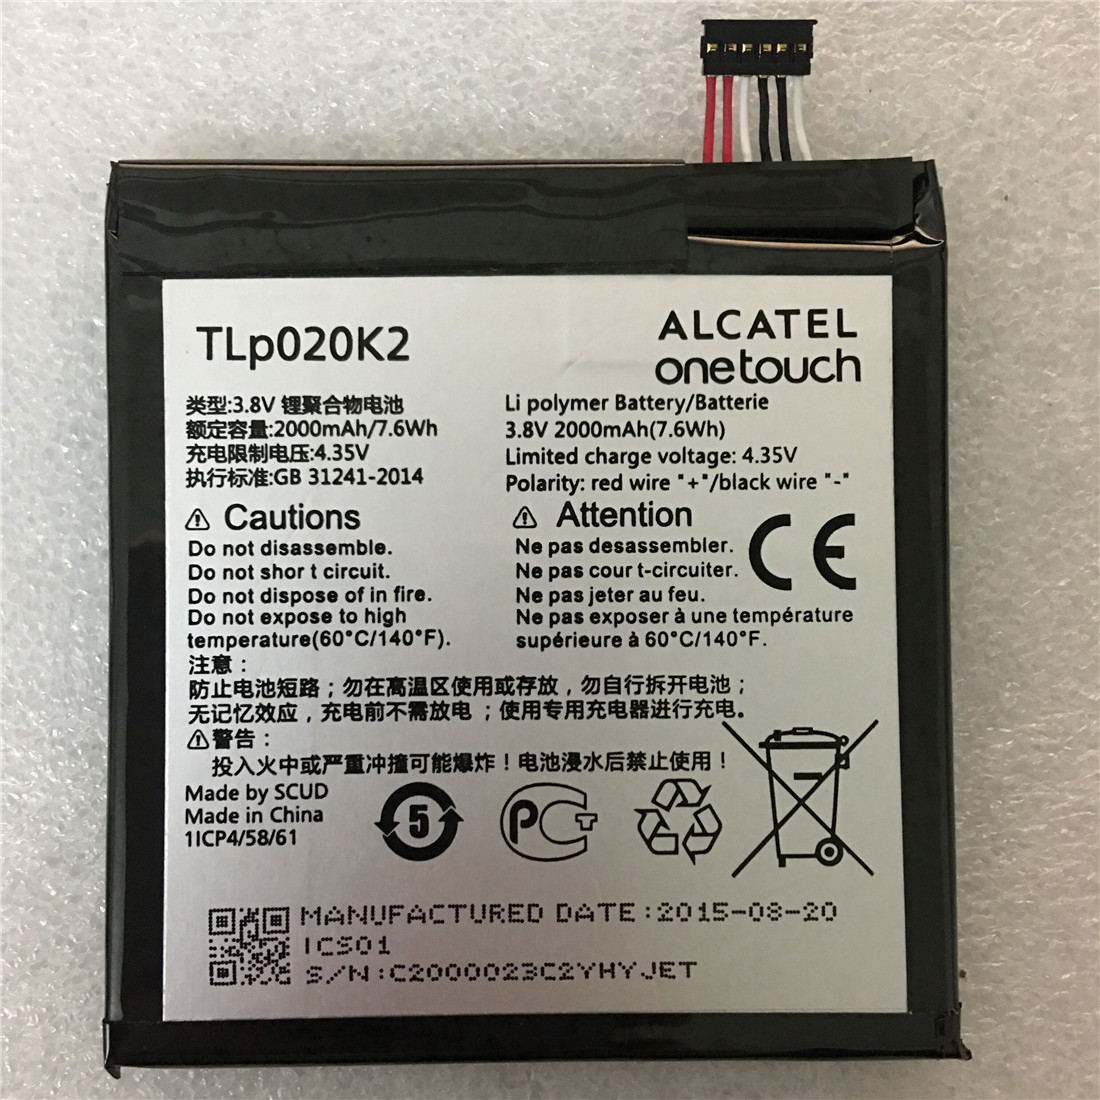 TLp020K2 <font><b>3.8V</b></font> <font><b>2000mAh</b></font> <font><b>Battery</b></font> for Alcatel One Touch 6039H 6039Y 6039K Idol 3 4.7 Inches TLp020Kj mobile phone <font><b>Batteries</b></font> image